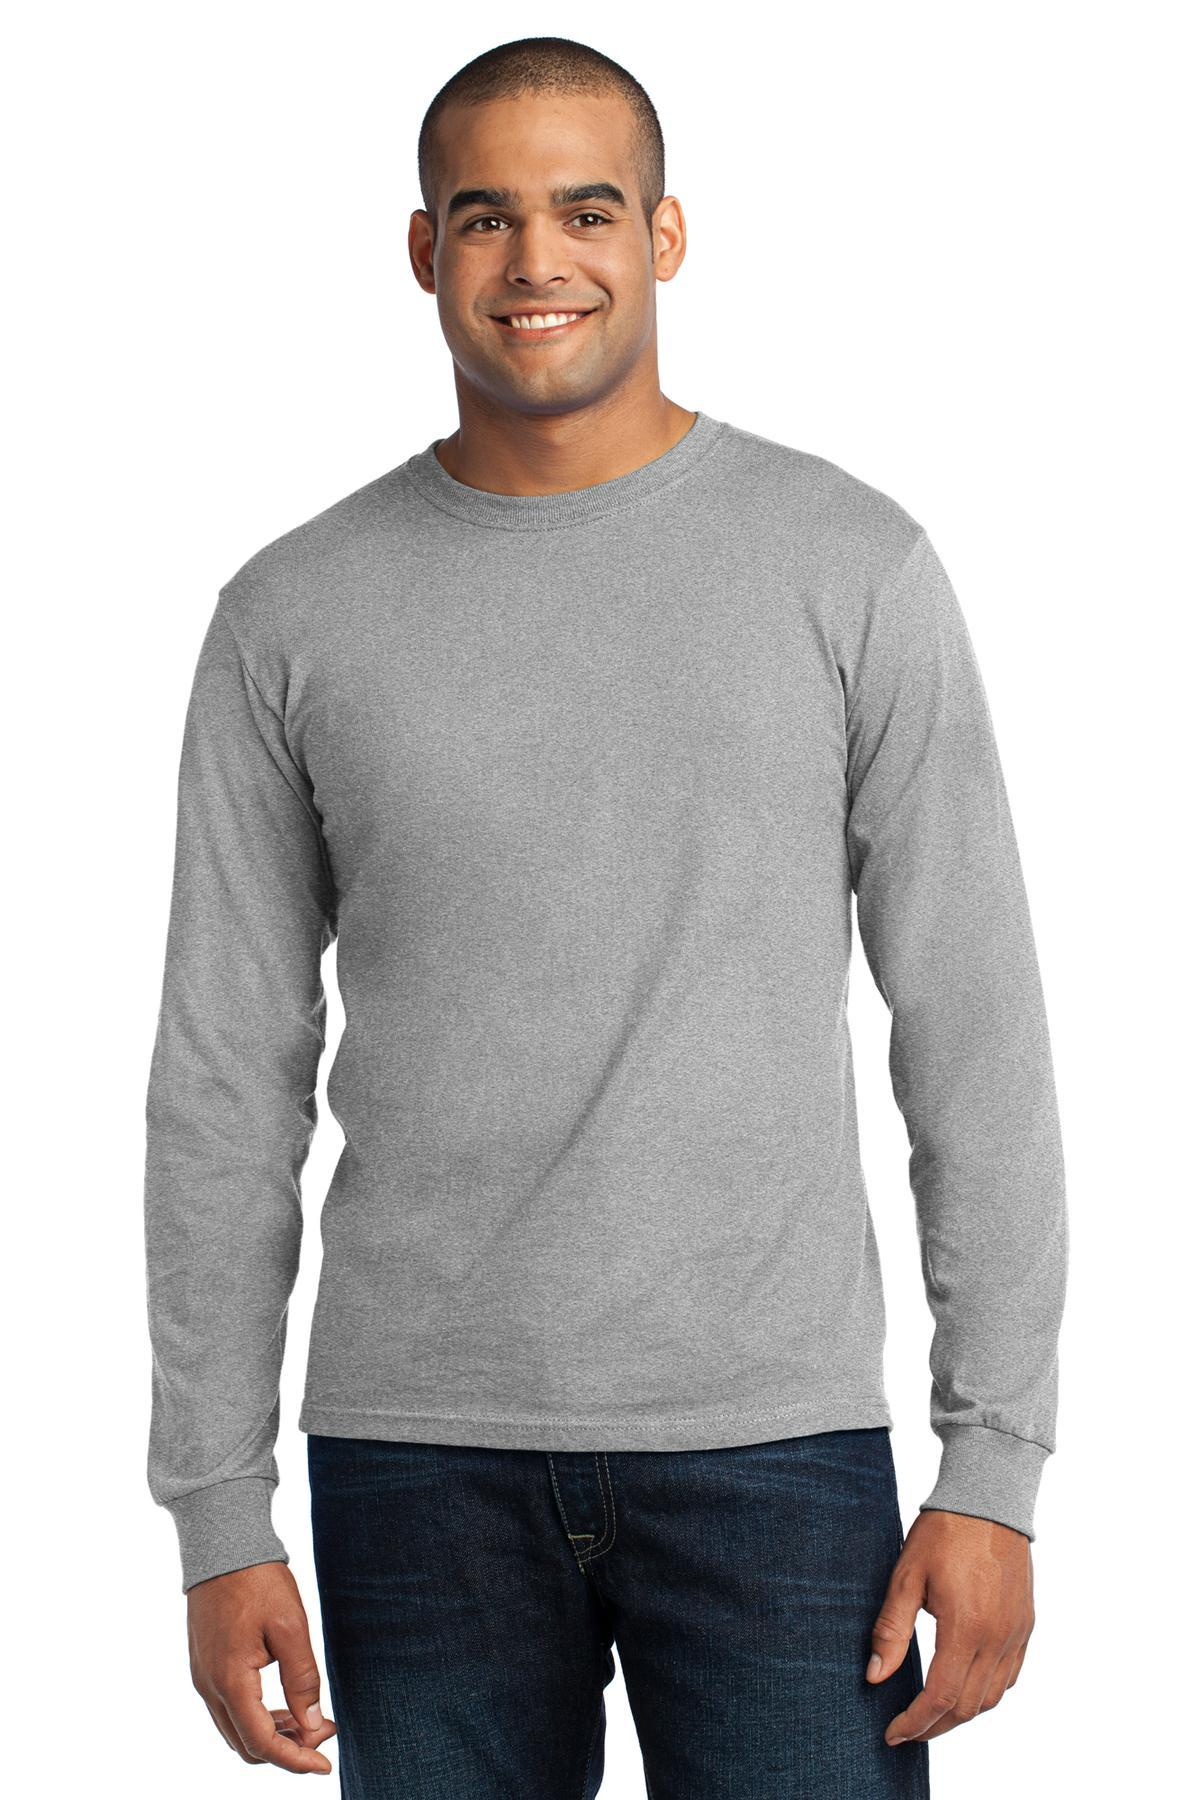 Athletic Heather - Port & Company USA100LS